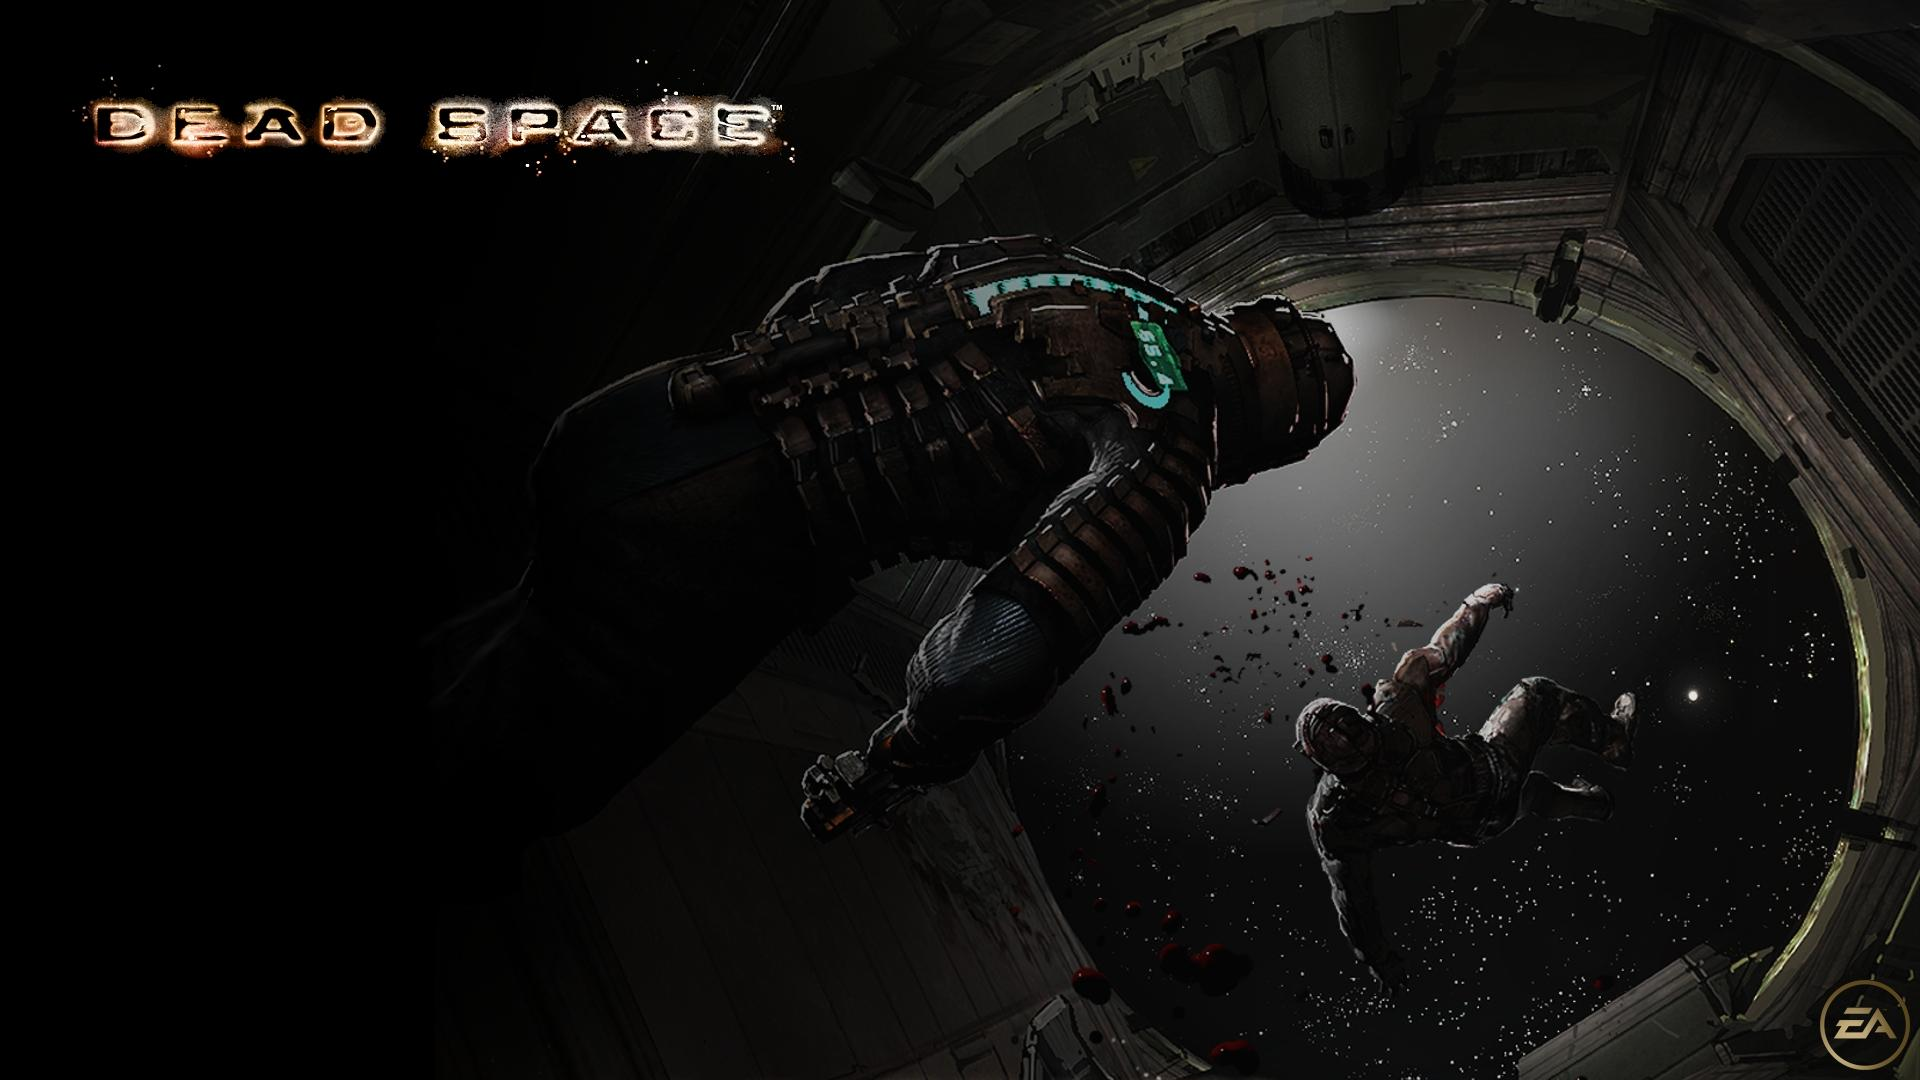 82 dead space hd wallpapers backgrounds wallpaper abyss - Dead space 3 wallpaper 1080p ...